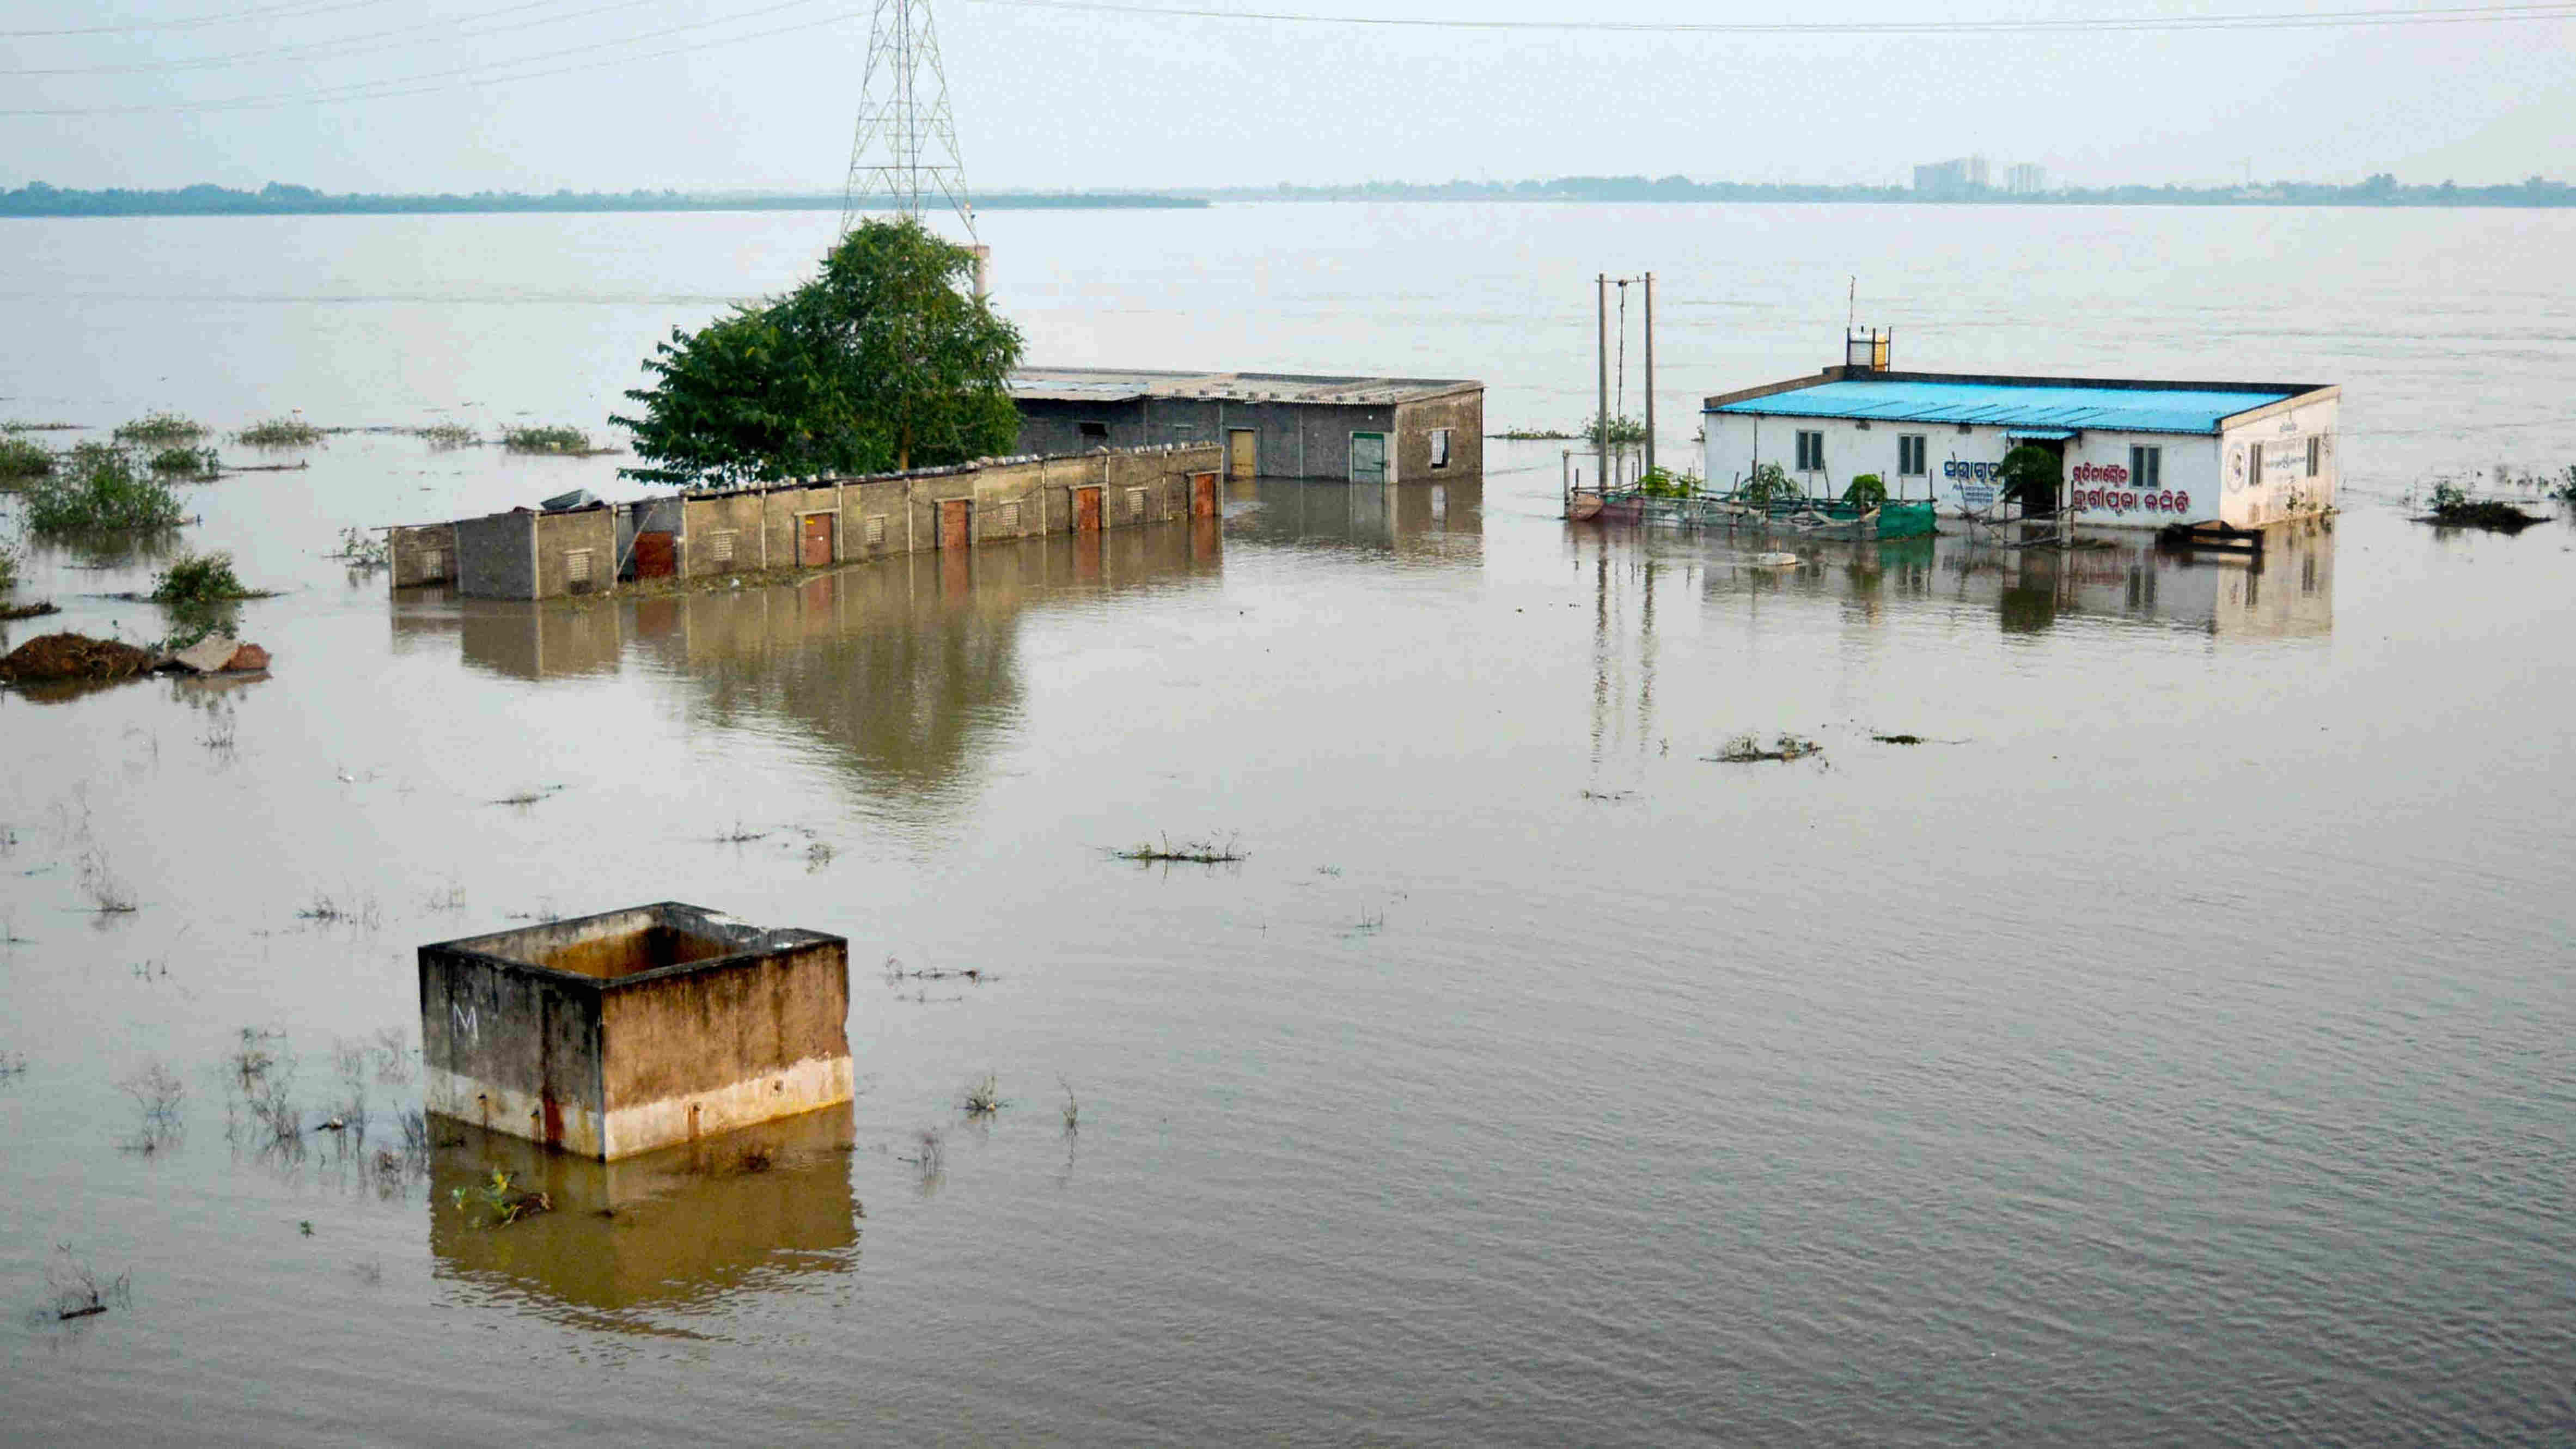 A low-lying locality submerged in flood waters following heavy rainfall in Cuttack district on Aug. 30, 2020.